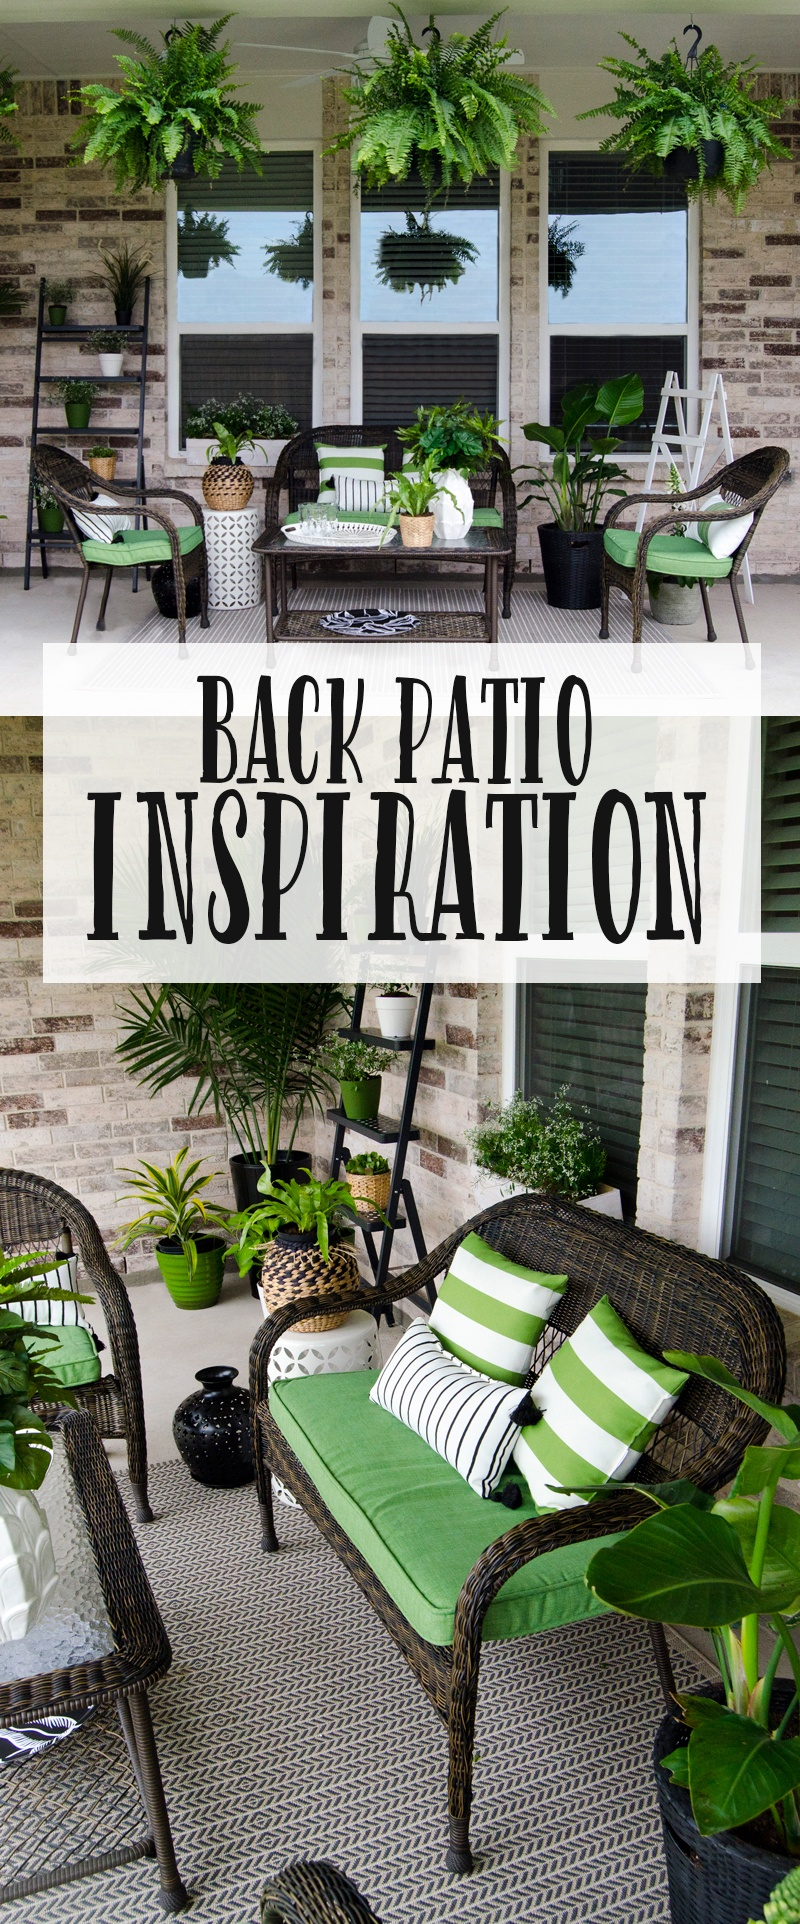 Patio inspiration with lowes by lindi haws of love the day for Outdoor patio inspiration